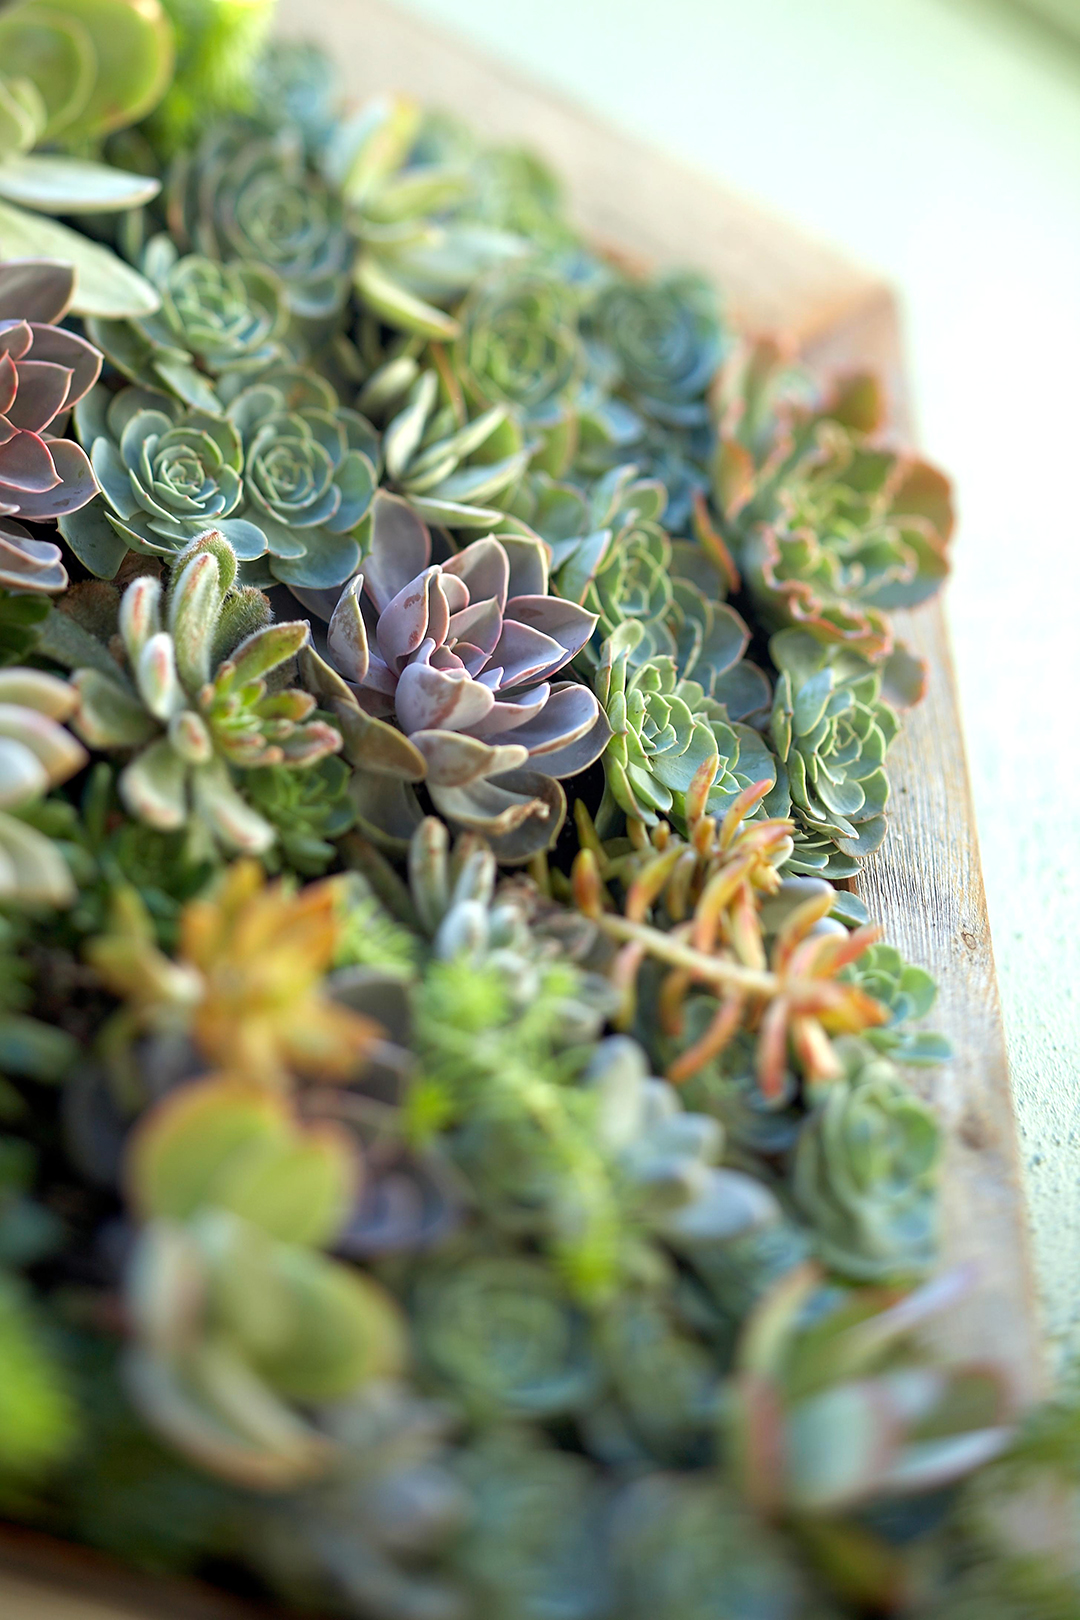 Flowerlike Rosettes Succulents In Wooden Box